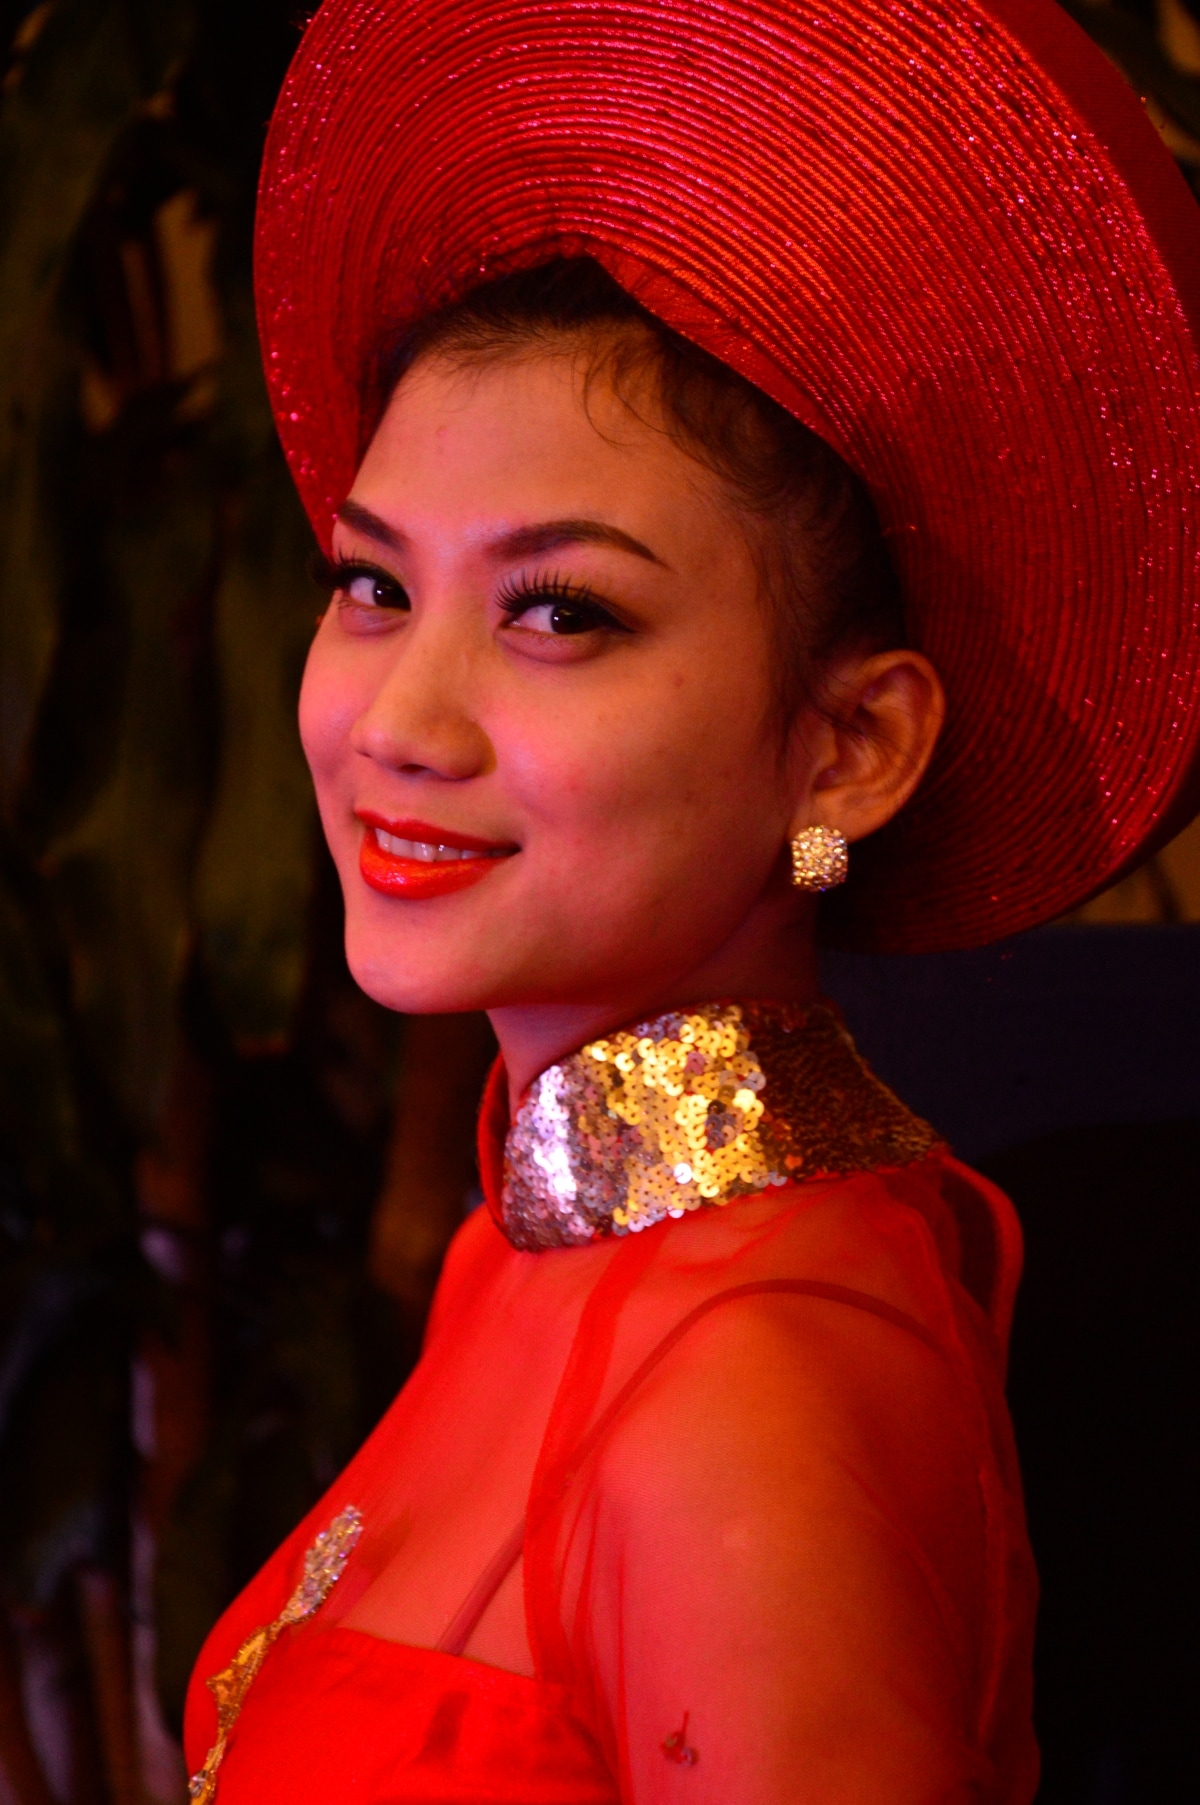 A Vietnamese girl in her traditional dress and hat in Hanoi, Vietnam.